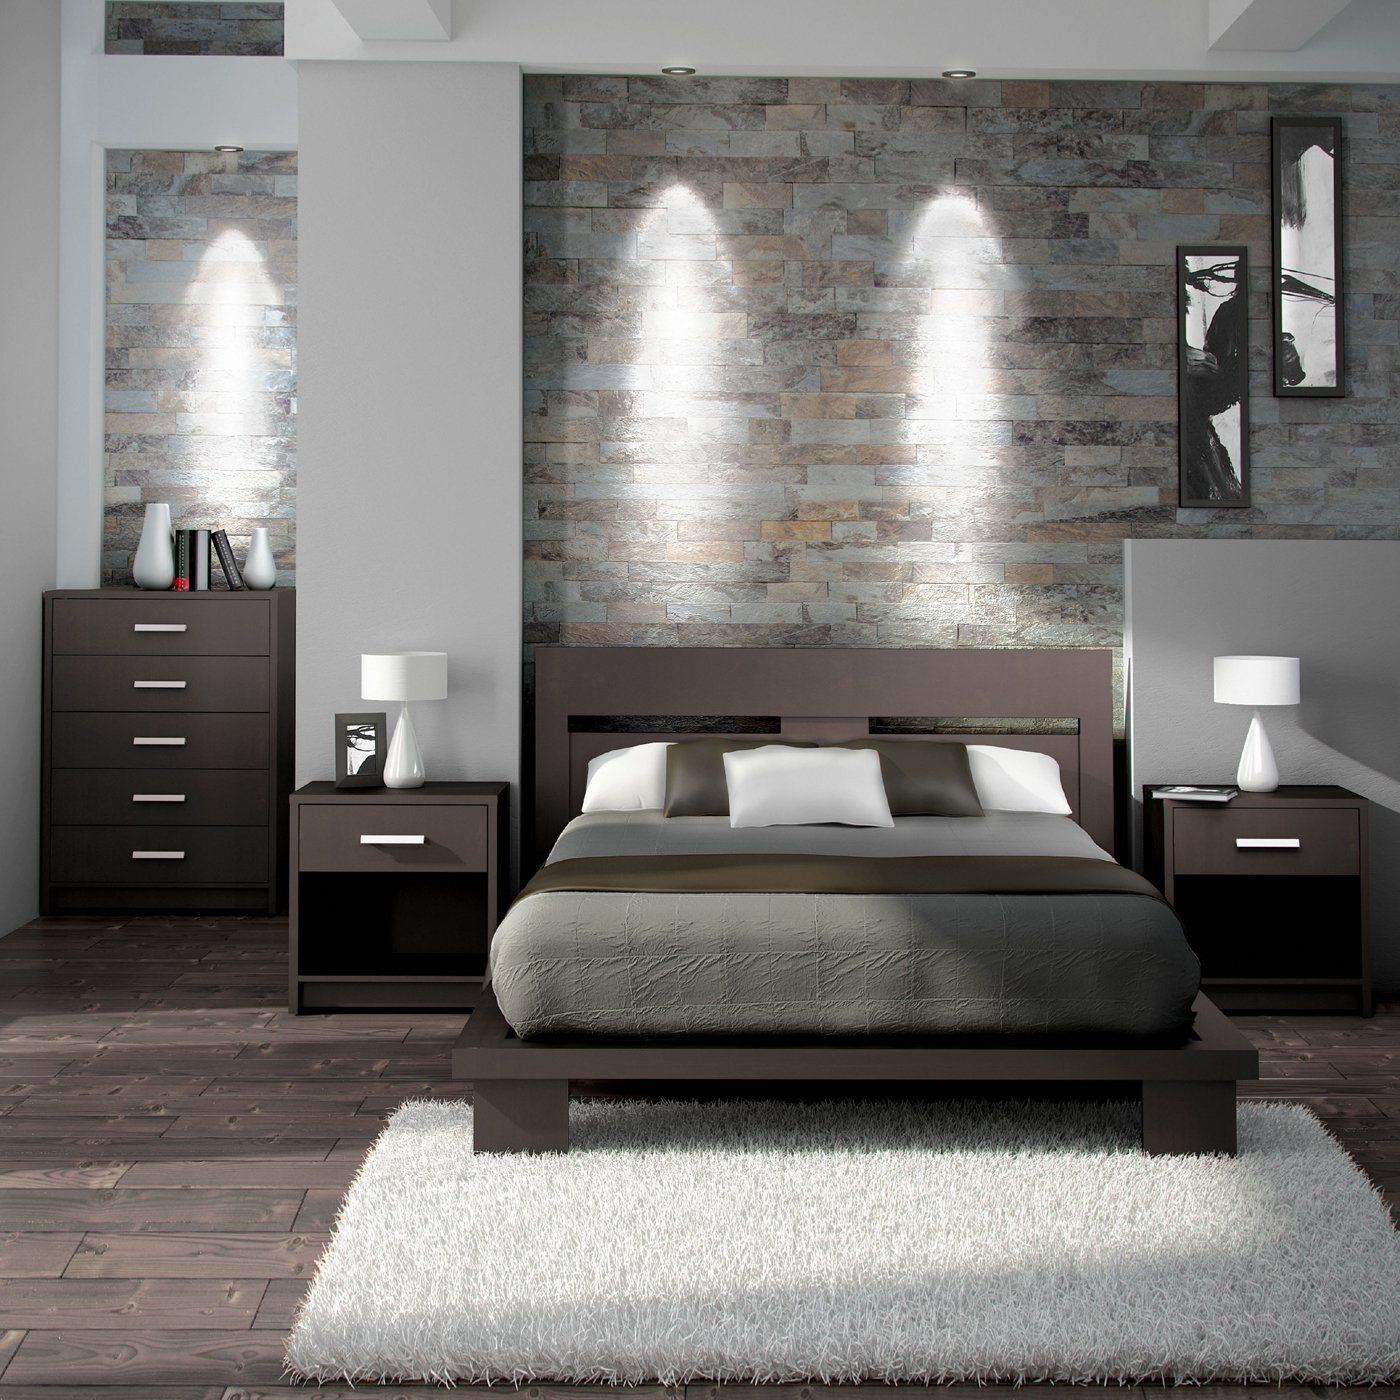 bedroom decor. Exellent Decor A Simple And Modern Bedroom Set In Espresso Brown Itu0027s Made With A 100  Recycled Cardboard With Bedroom Decor